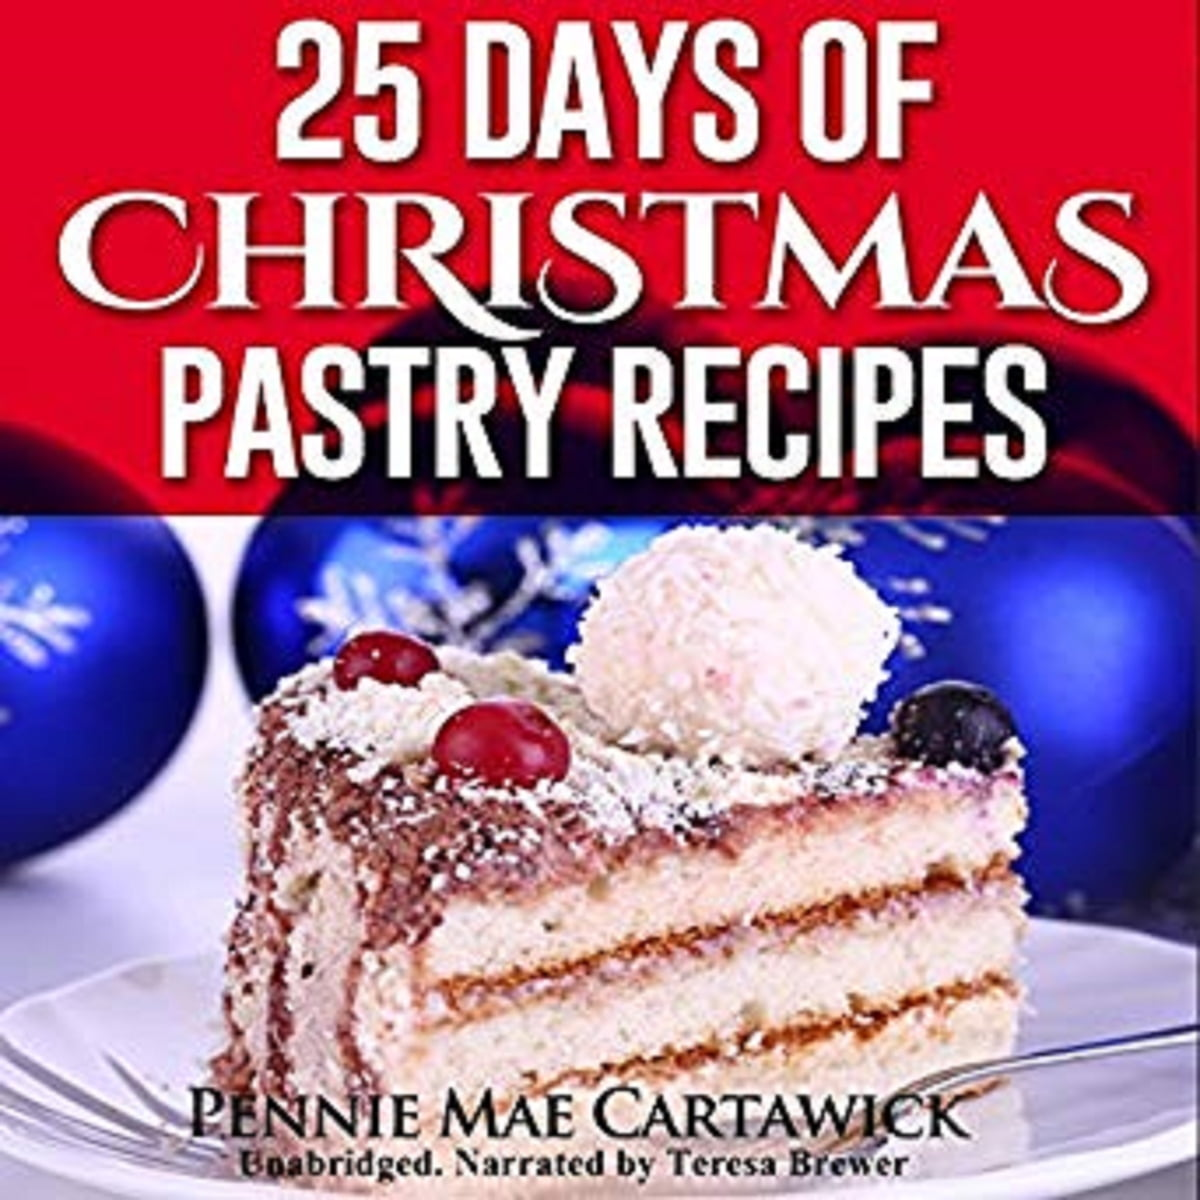 25 Days Of Christmas Pastry Recipes Holiday Baking From Cookies Fudge Cake Puddings Yule Log To Christmas Pies And Much More Audiobook By Pennie